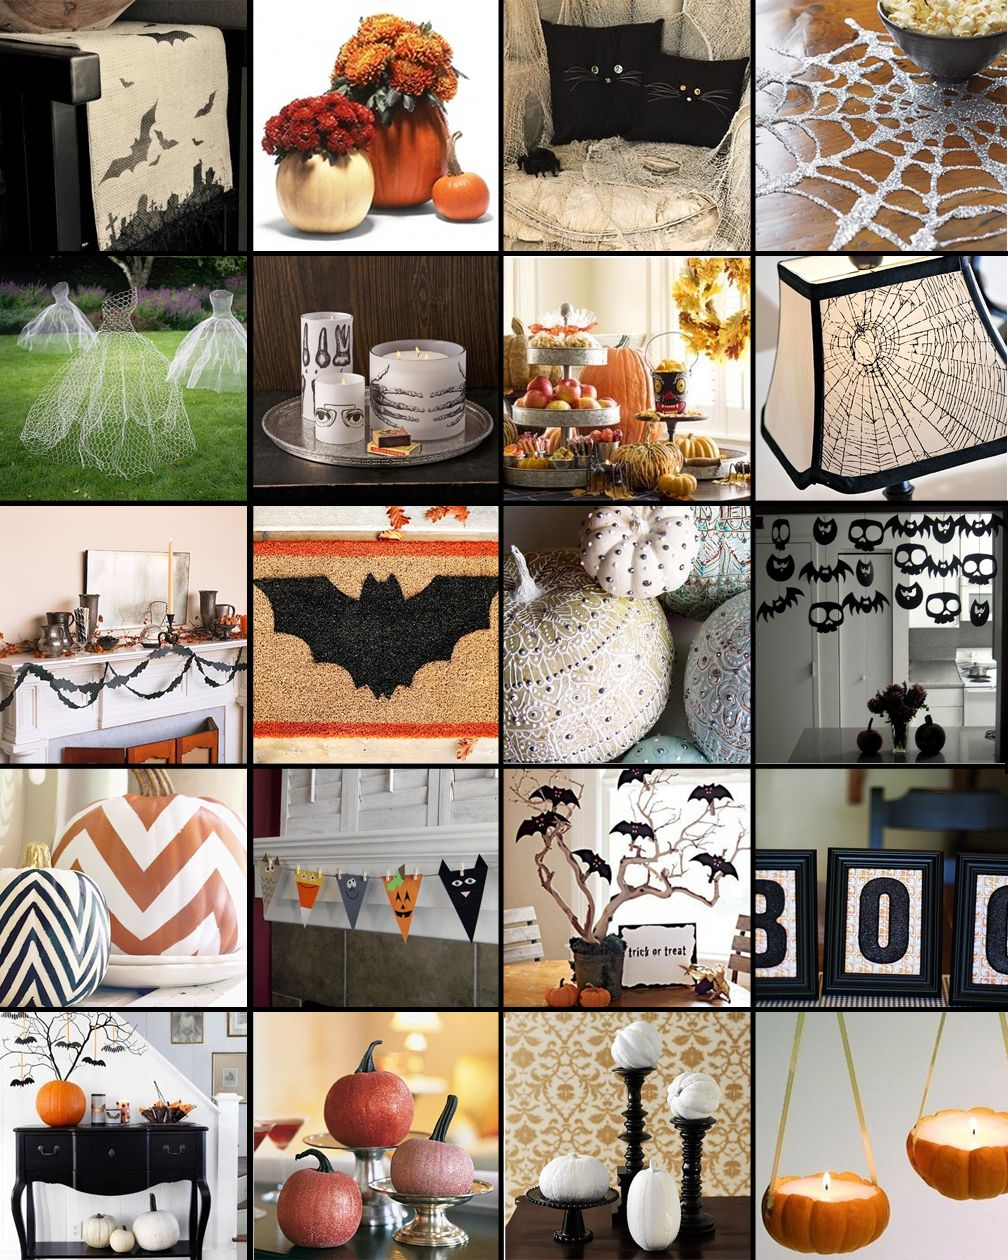 Cute halloween decorations to make - Pinterest Wednesday 20 Diy Decorations For Halloween